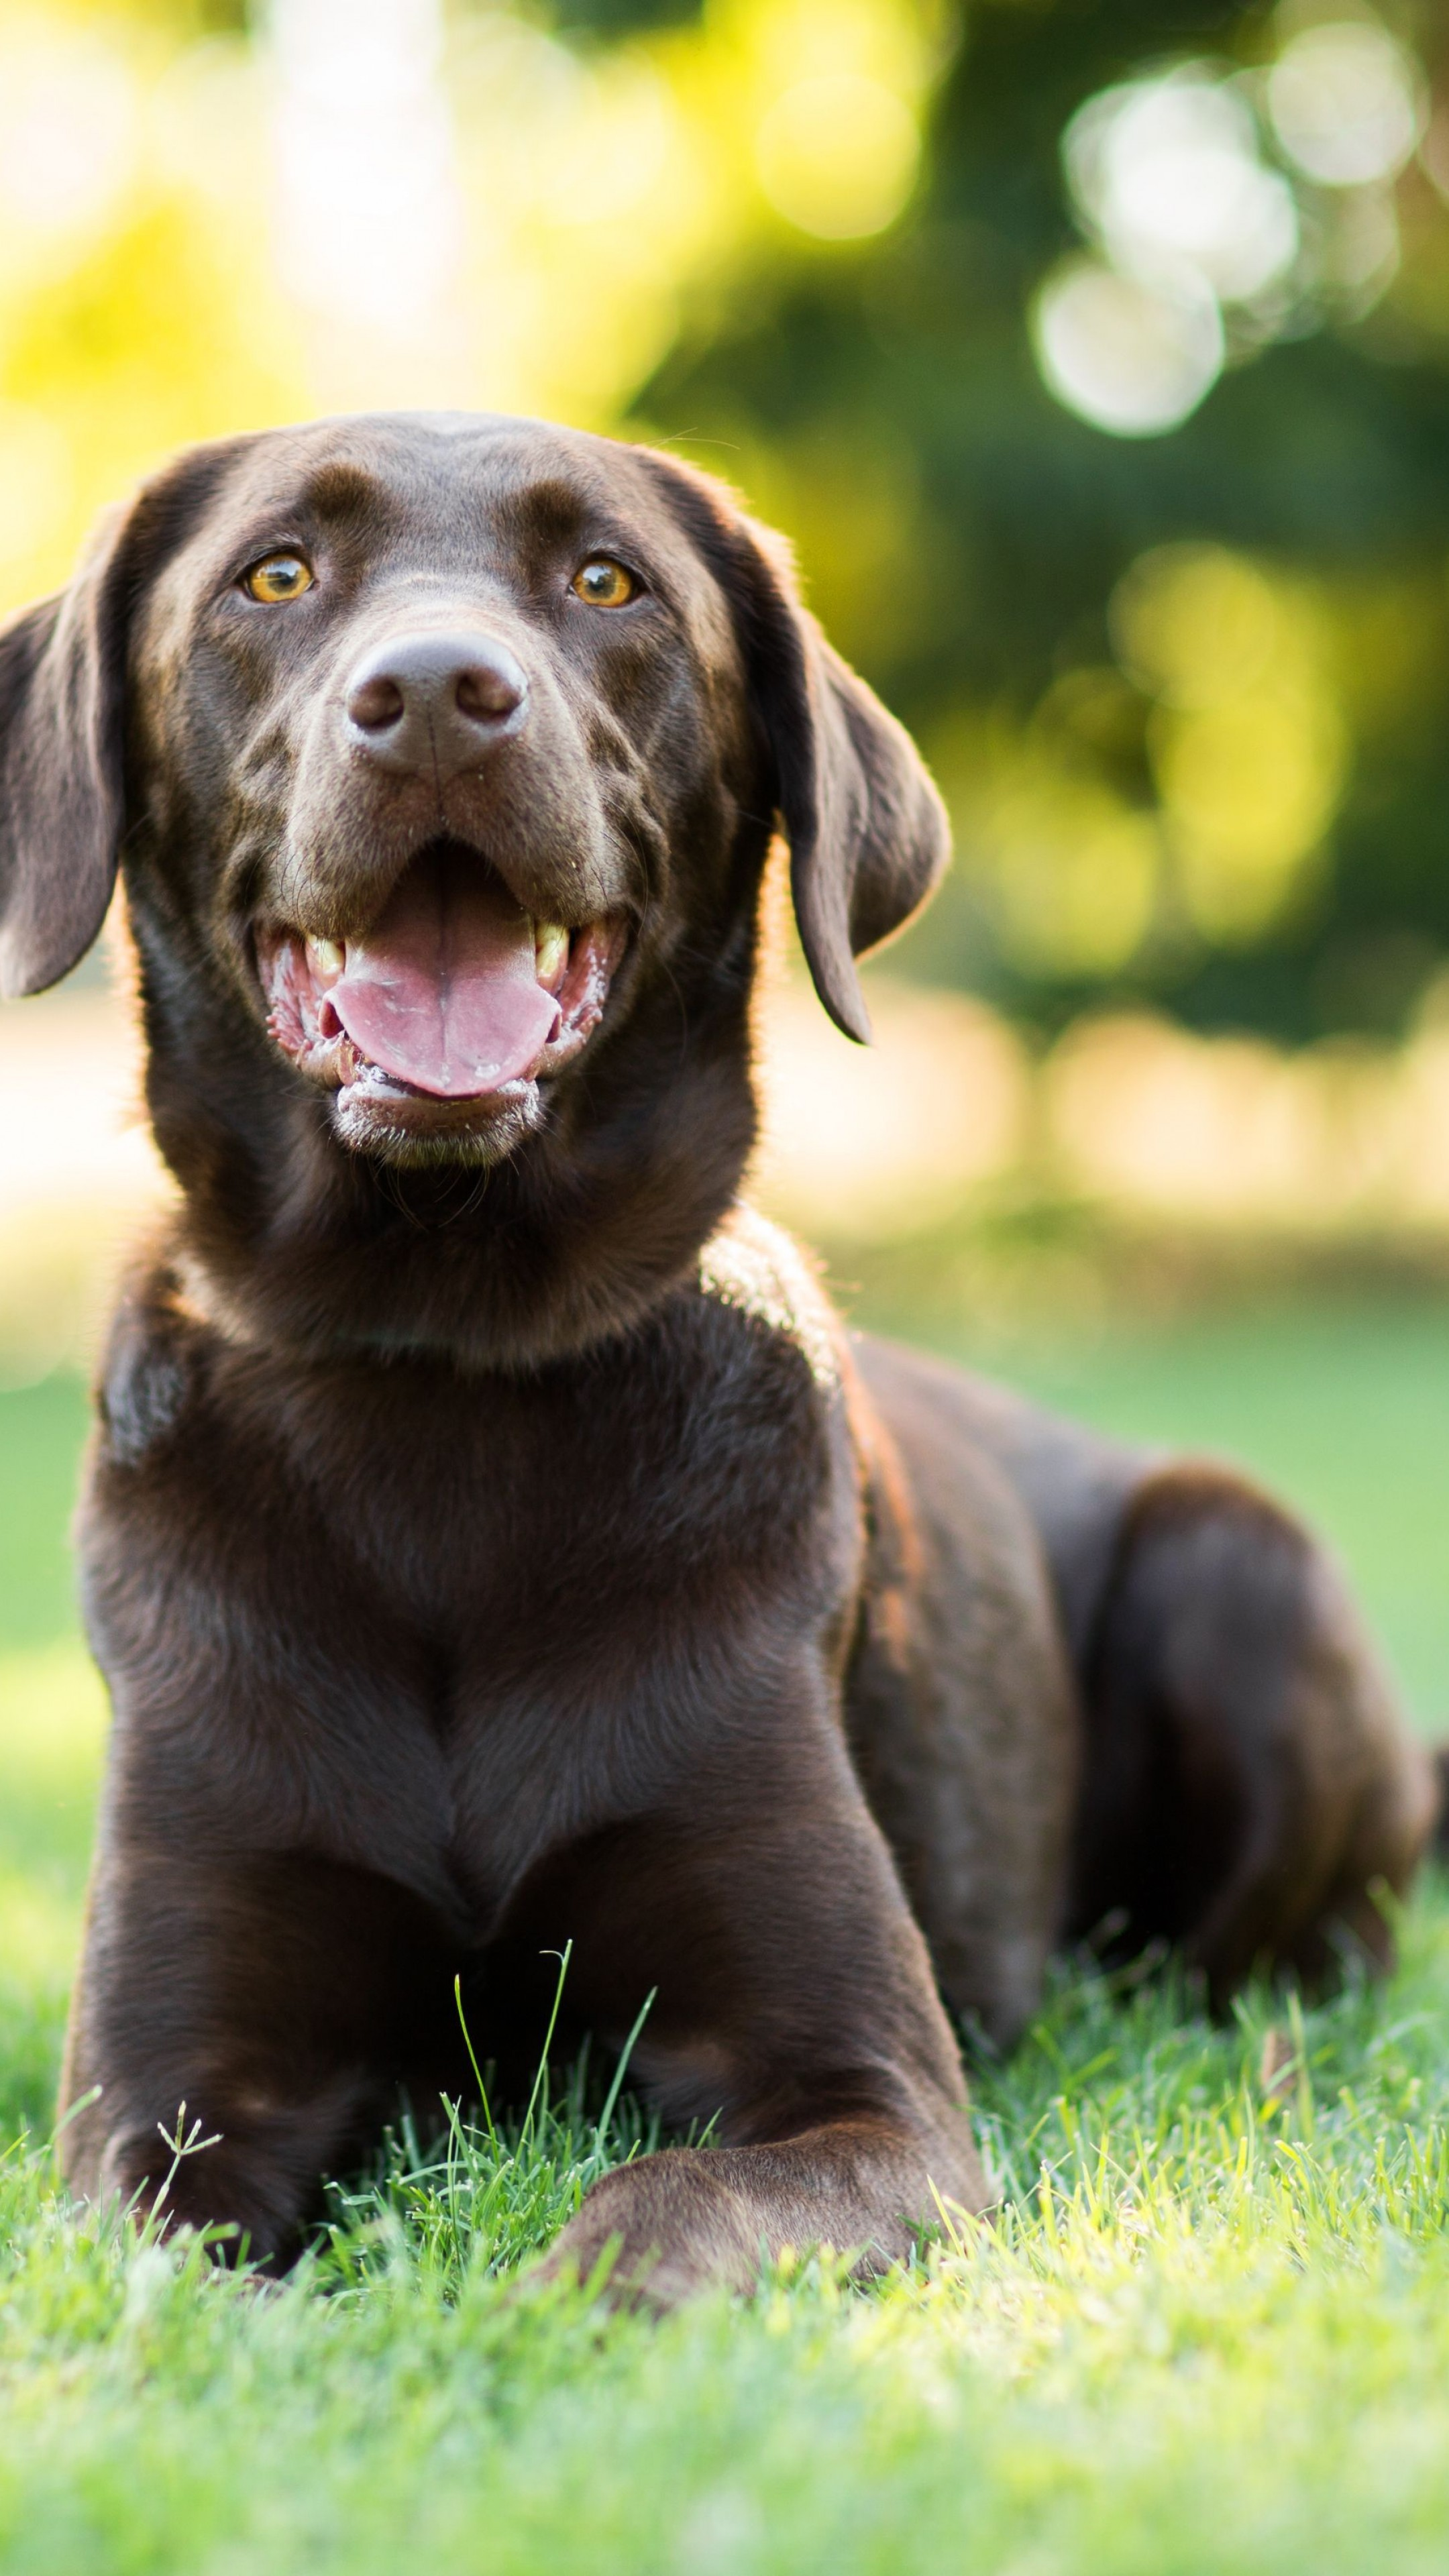 Cute Tech Wallpaper Wallpaper Labrador Dog 4k Animals 14938